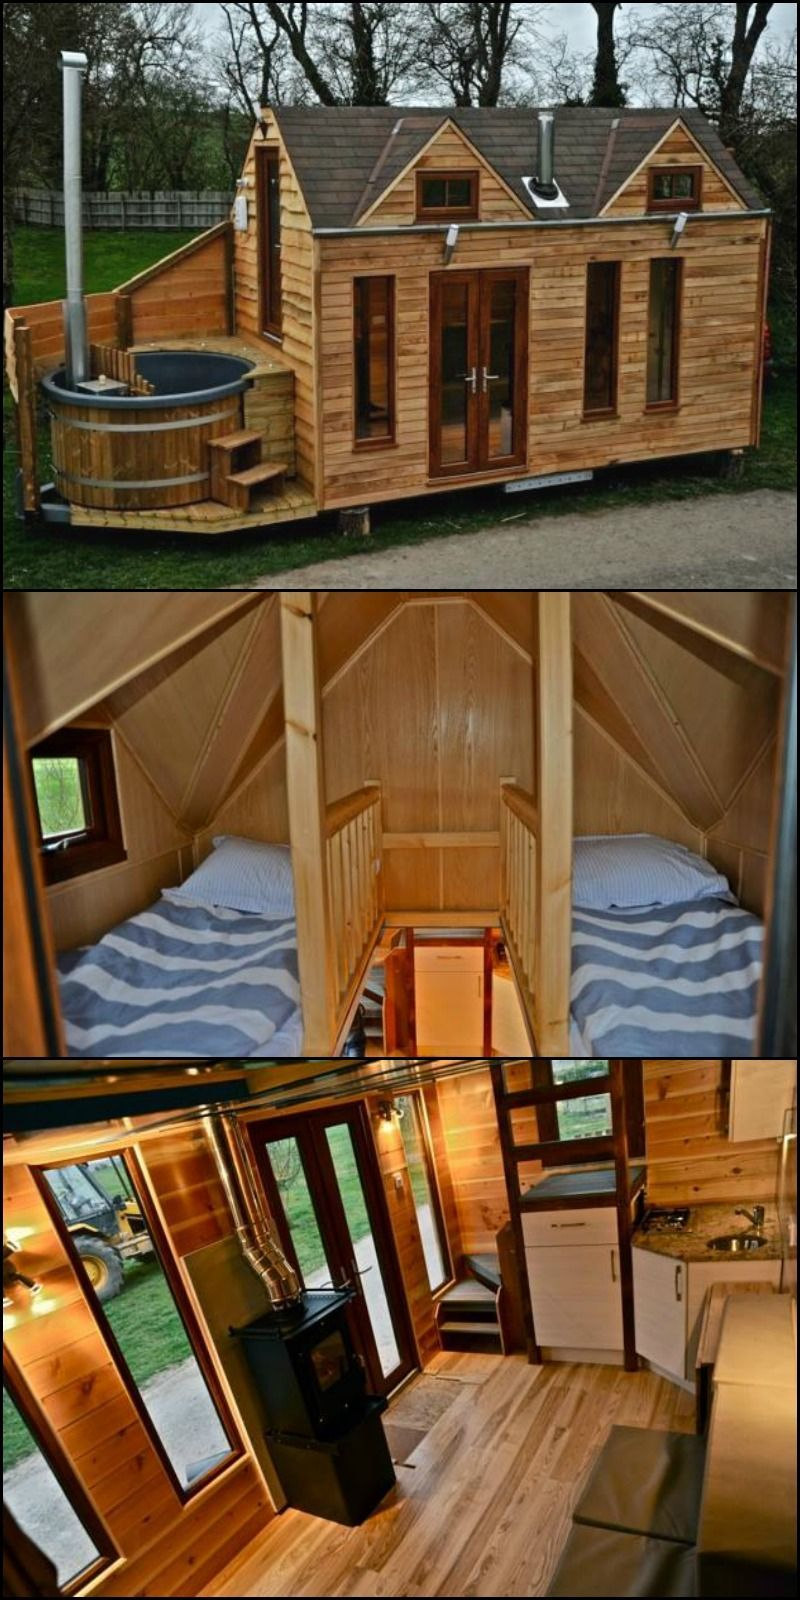 Mini Chalet En Bois living in a tiny house may mean a simpler life in general